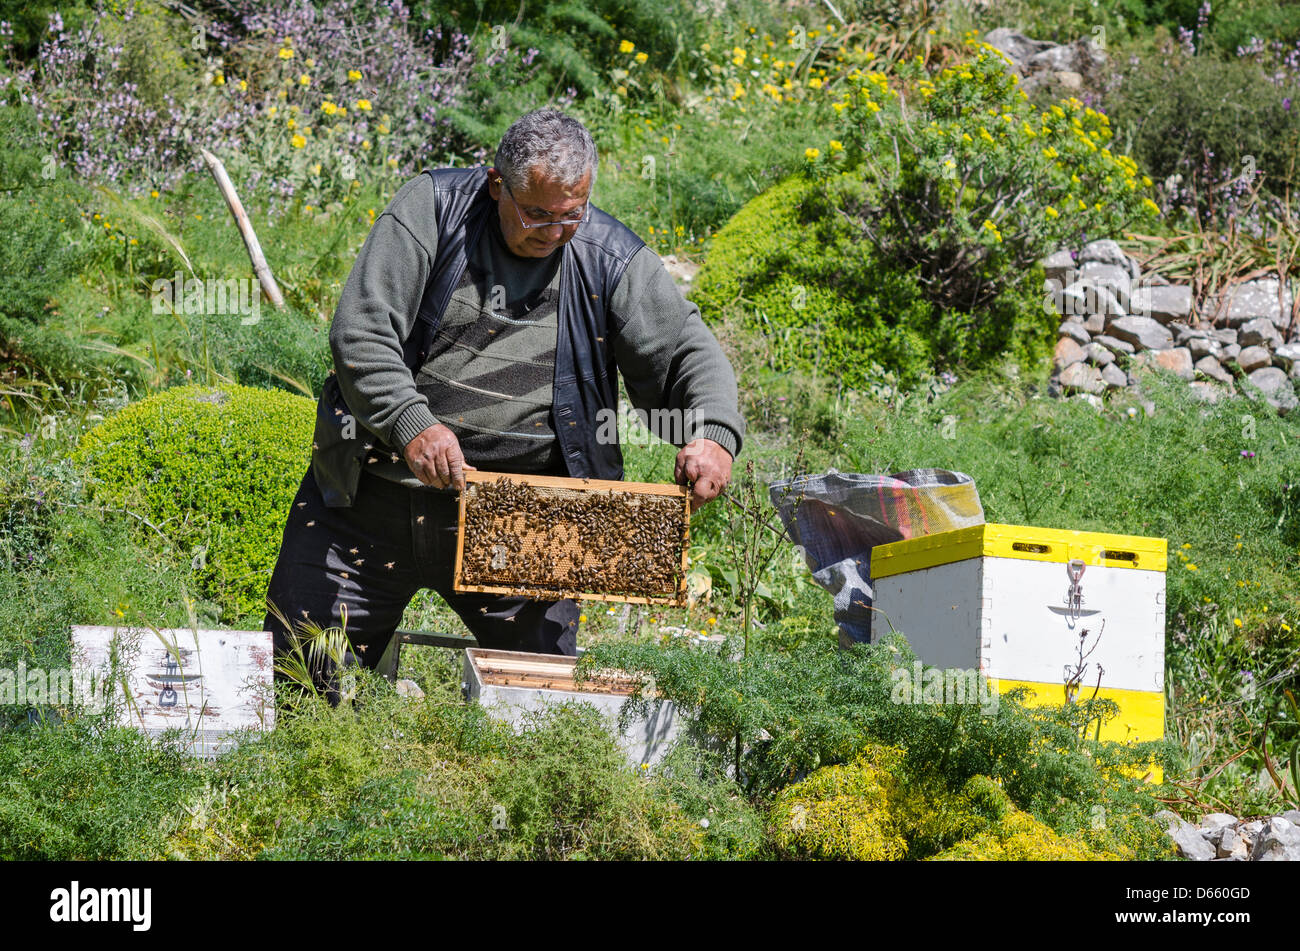 A beekeeper inspecting his hives in the Mani, Peloponnese, Greece. - Stock Image